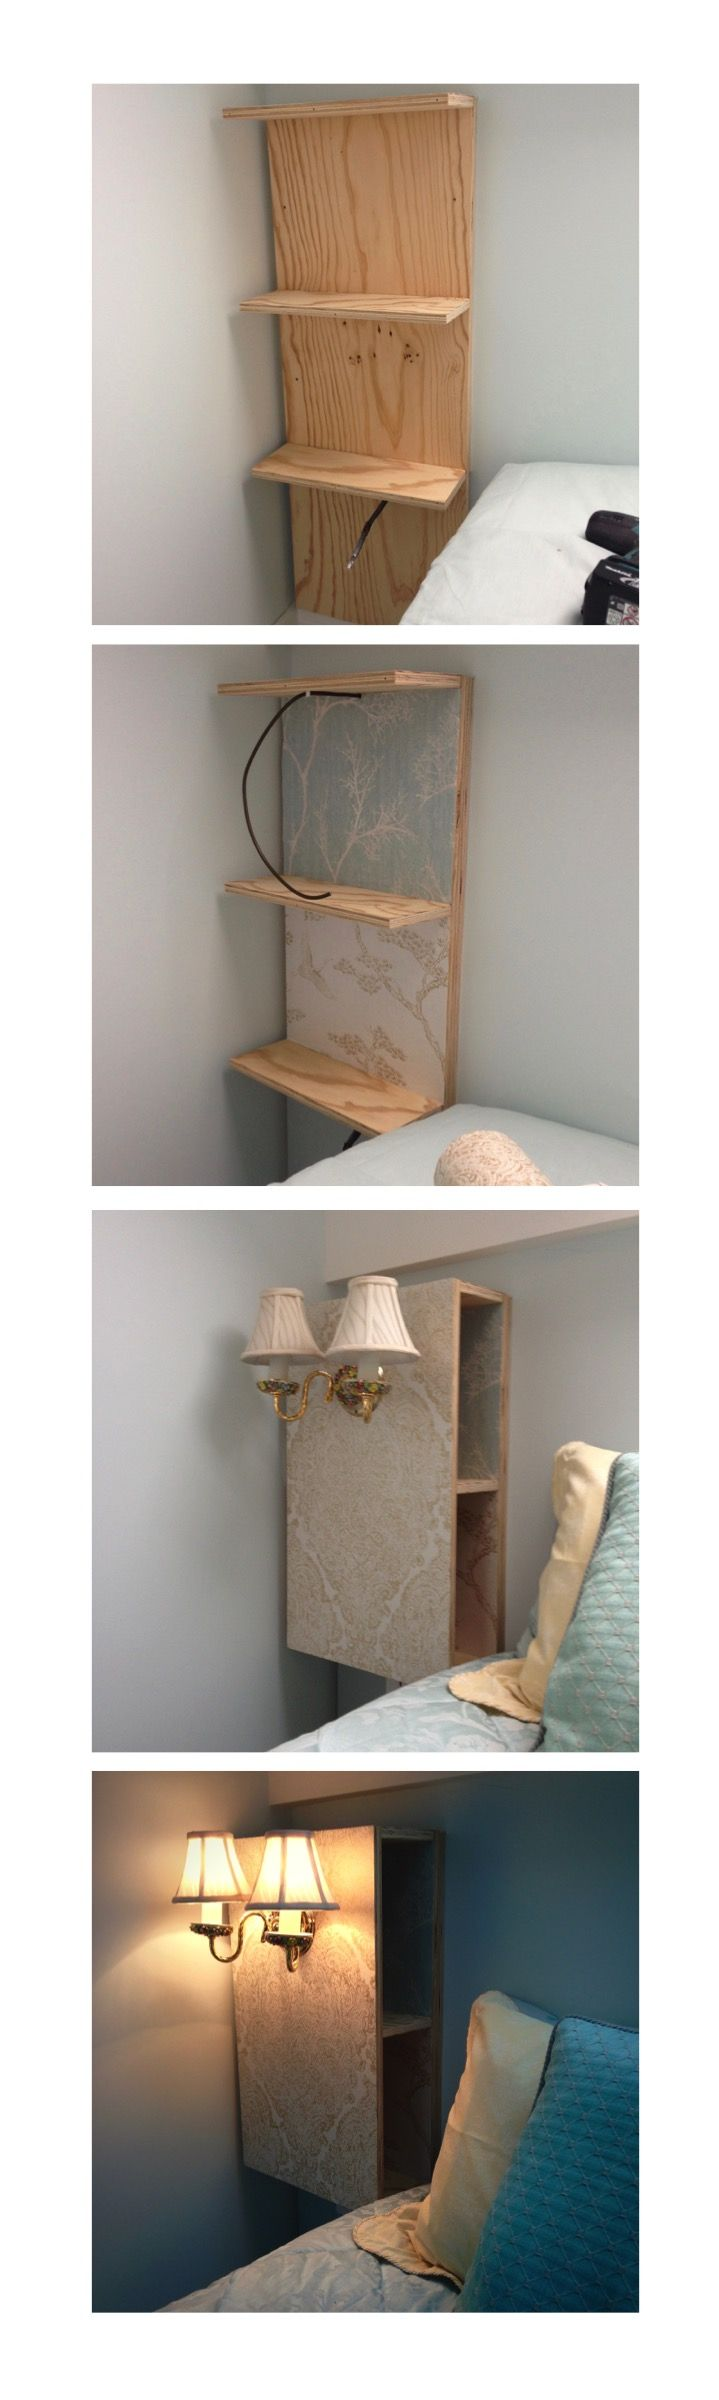 Space saving bedside cabinet made by Jane Handford Design, DIY have a go!